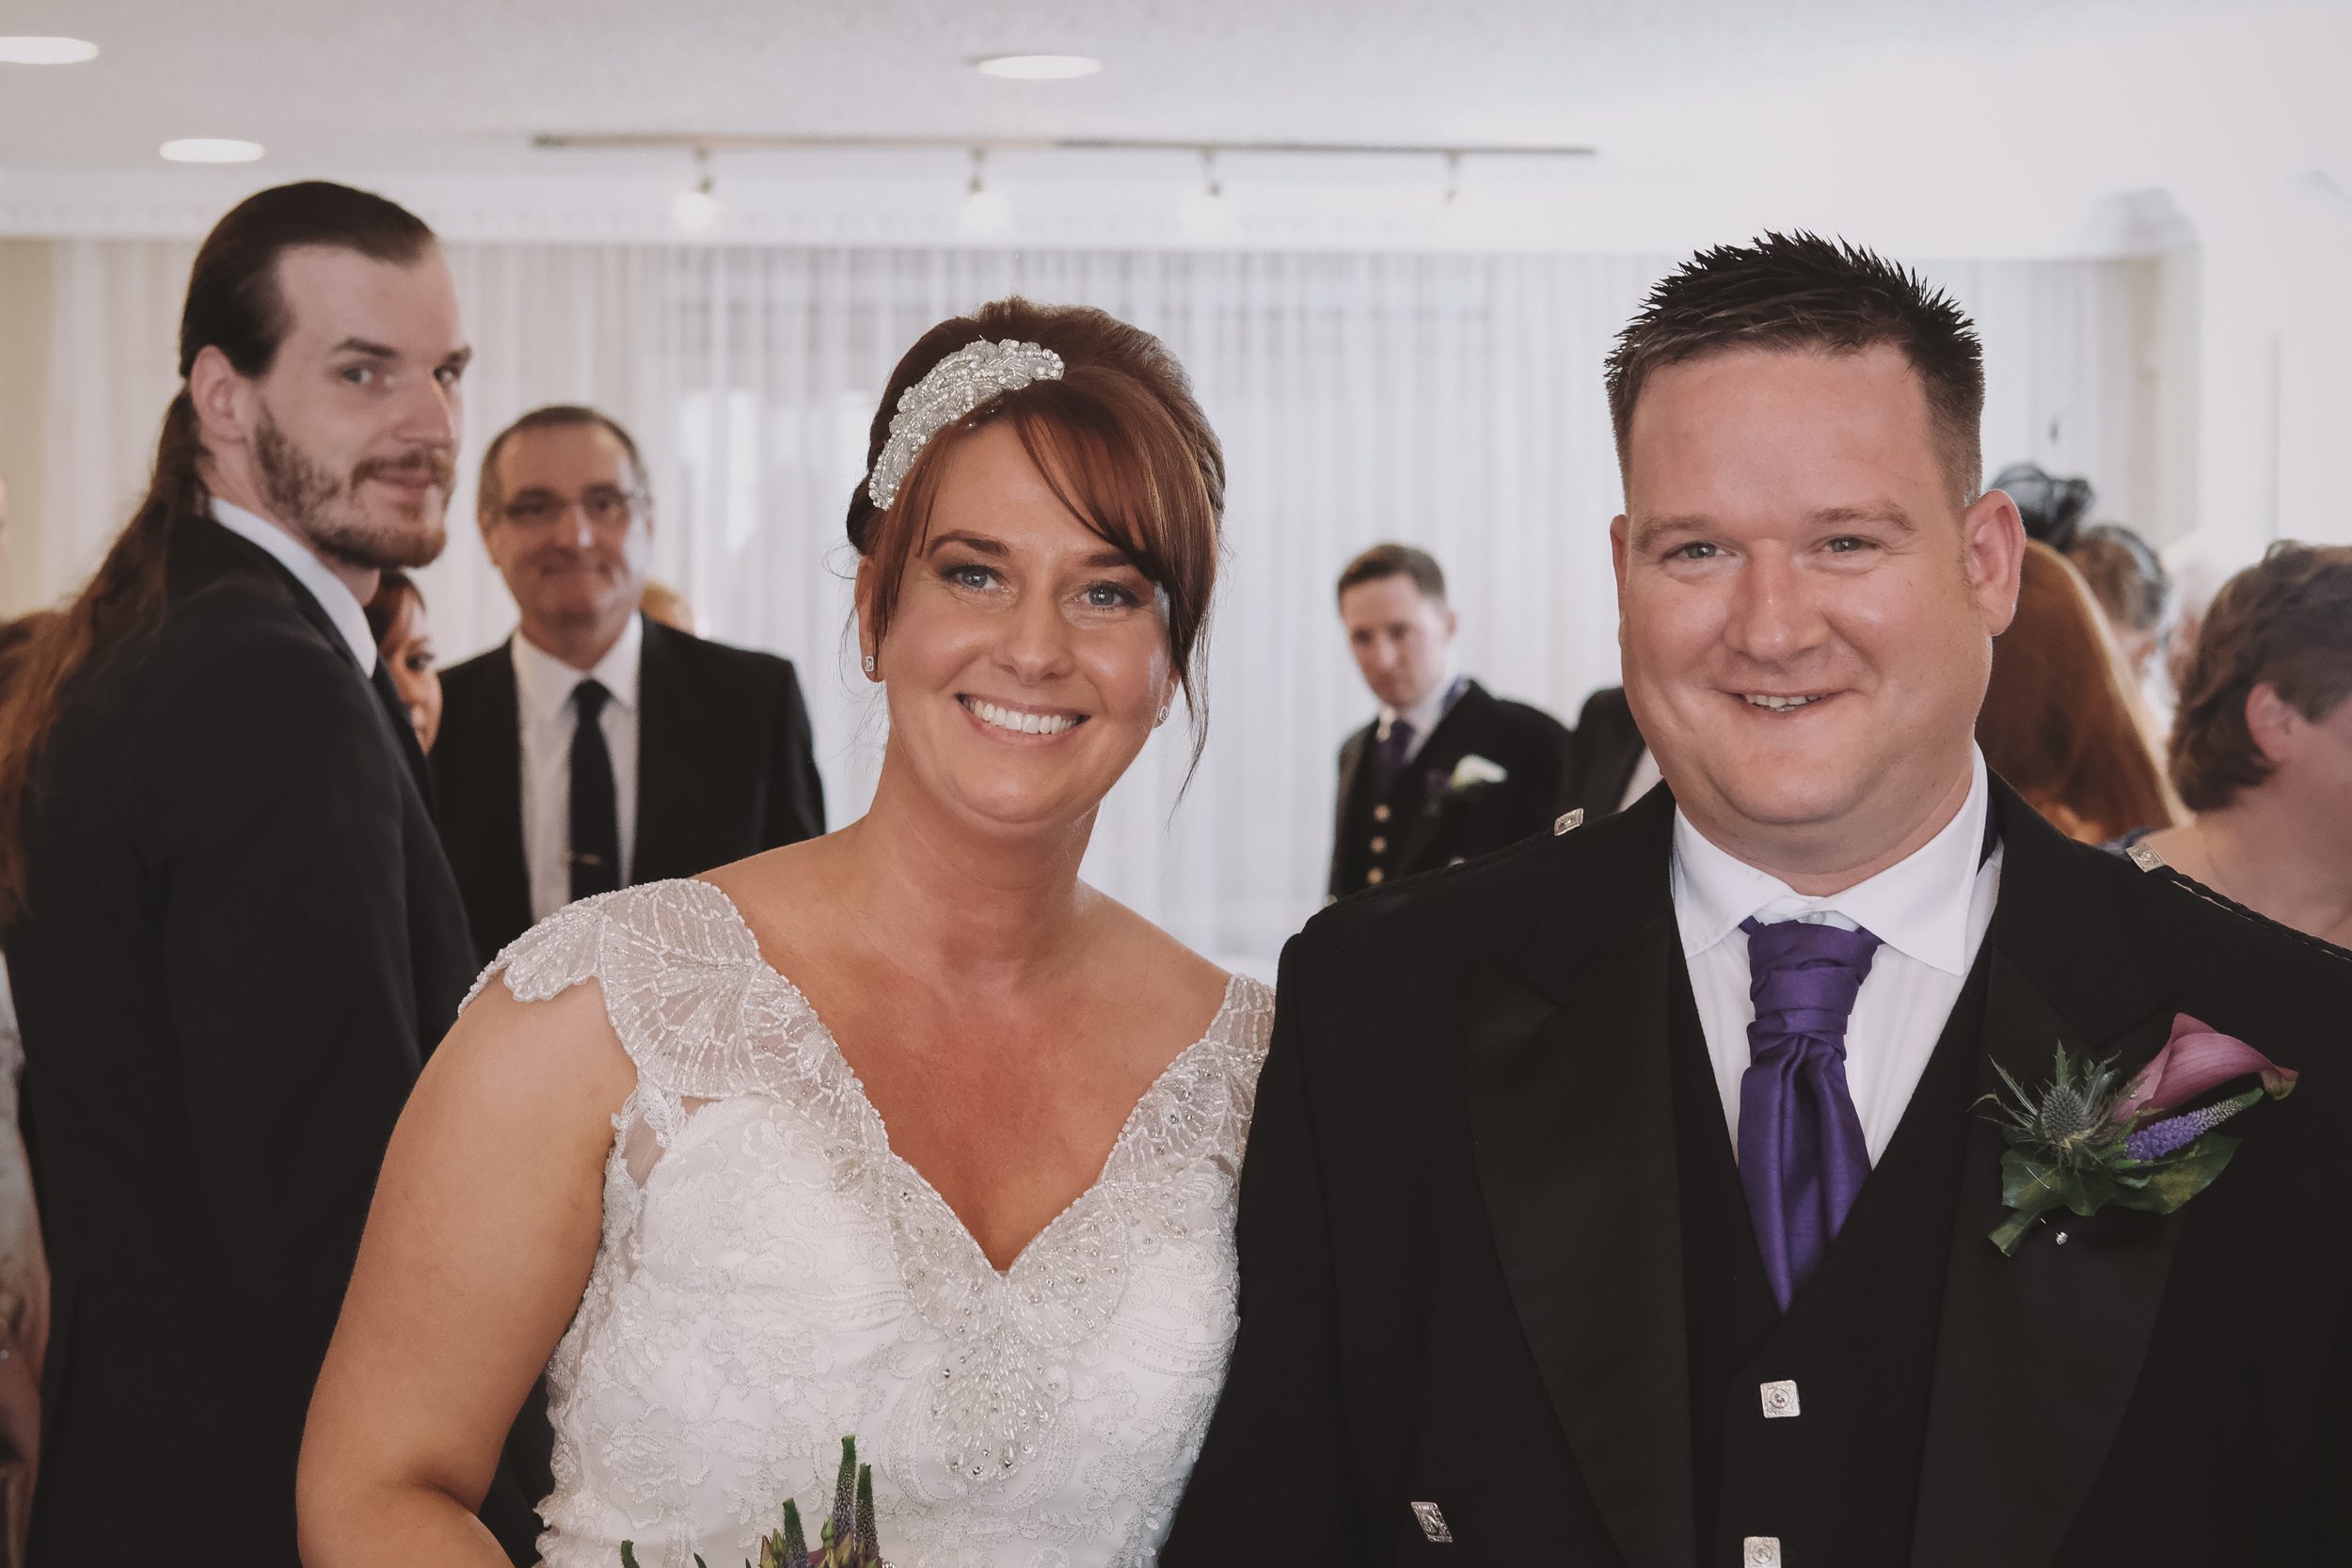 Newcastle Wedding Photographer // Bride and groom leaving ceremony